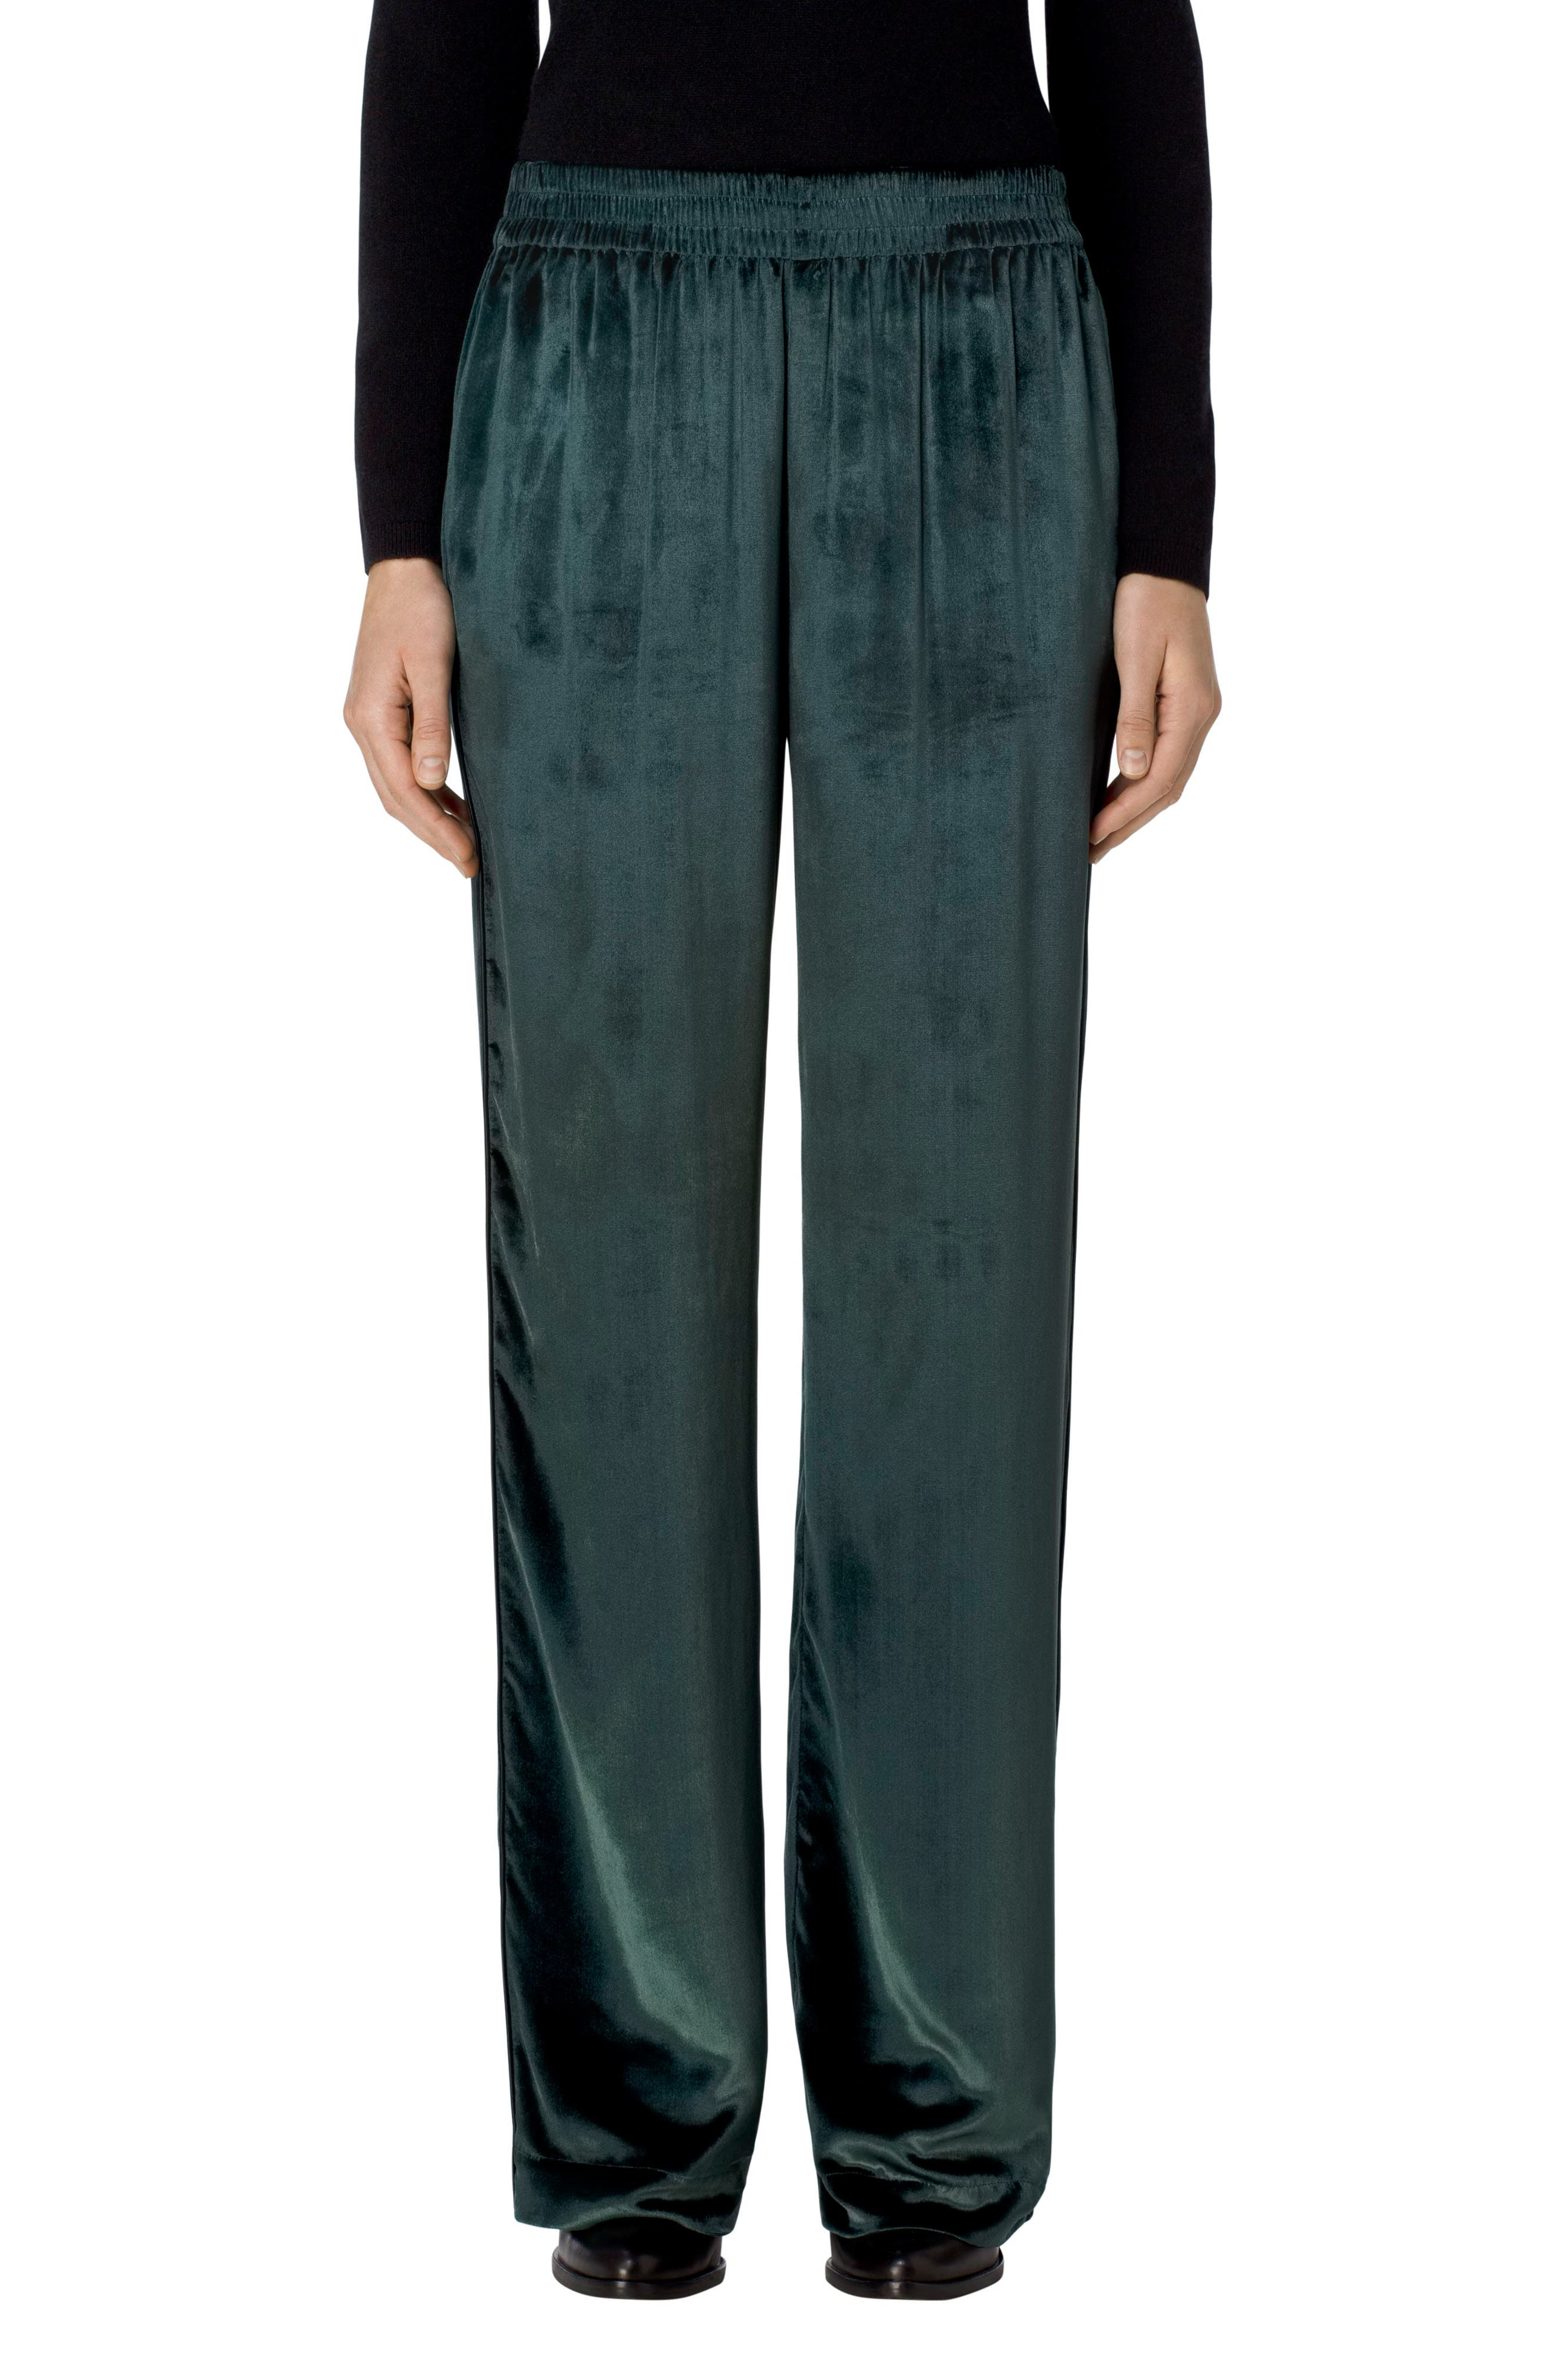 Ardon Velvet Pants,                         Main,                         color, Moorland